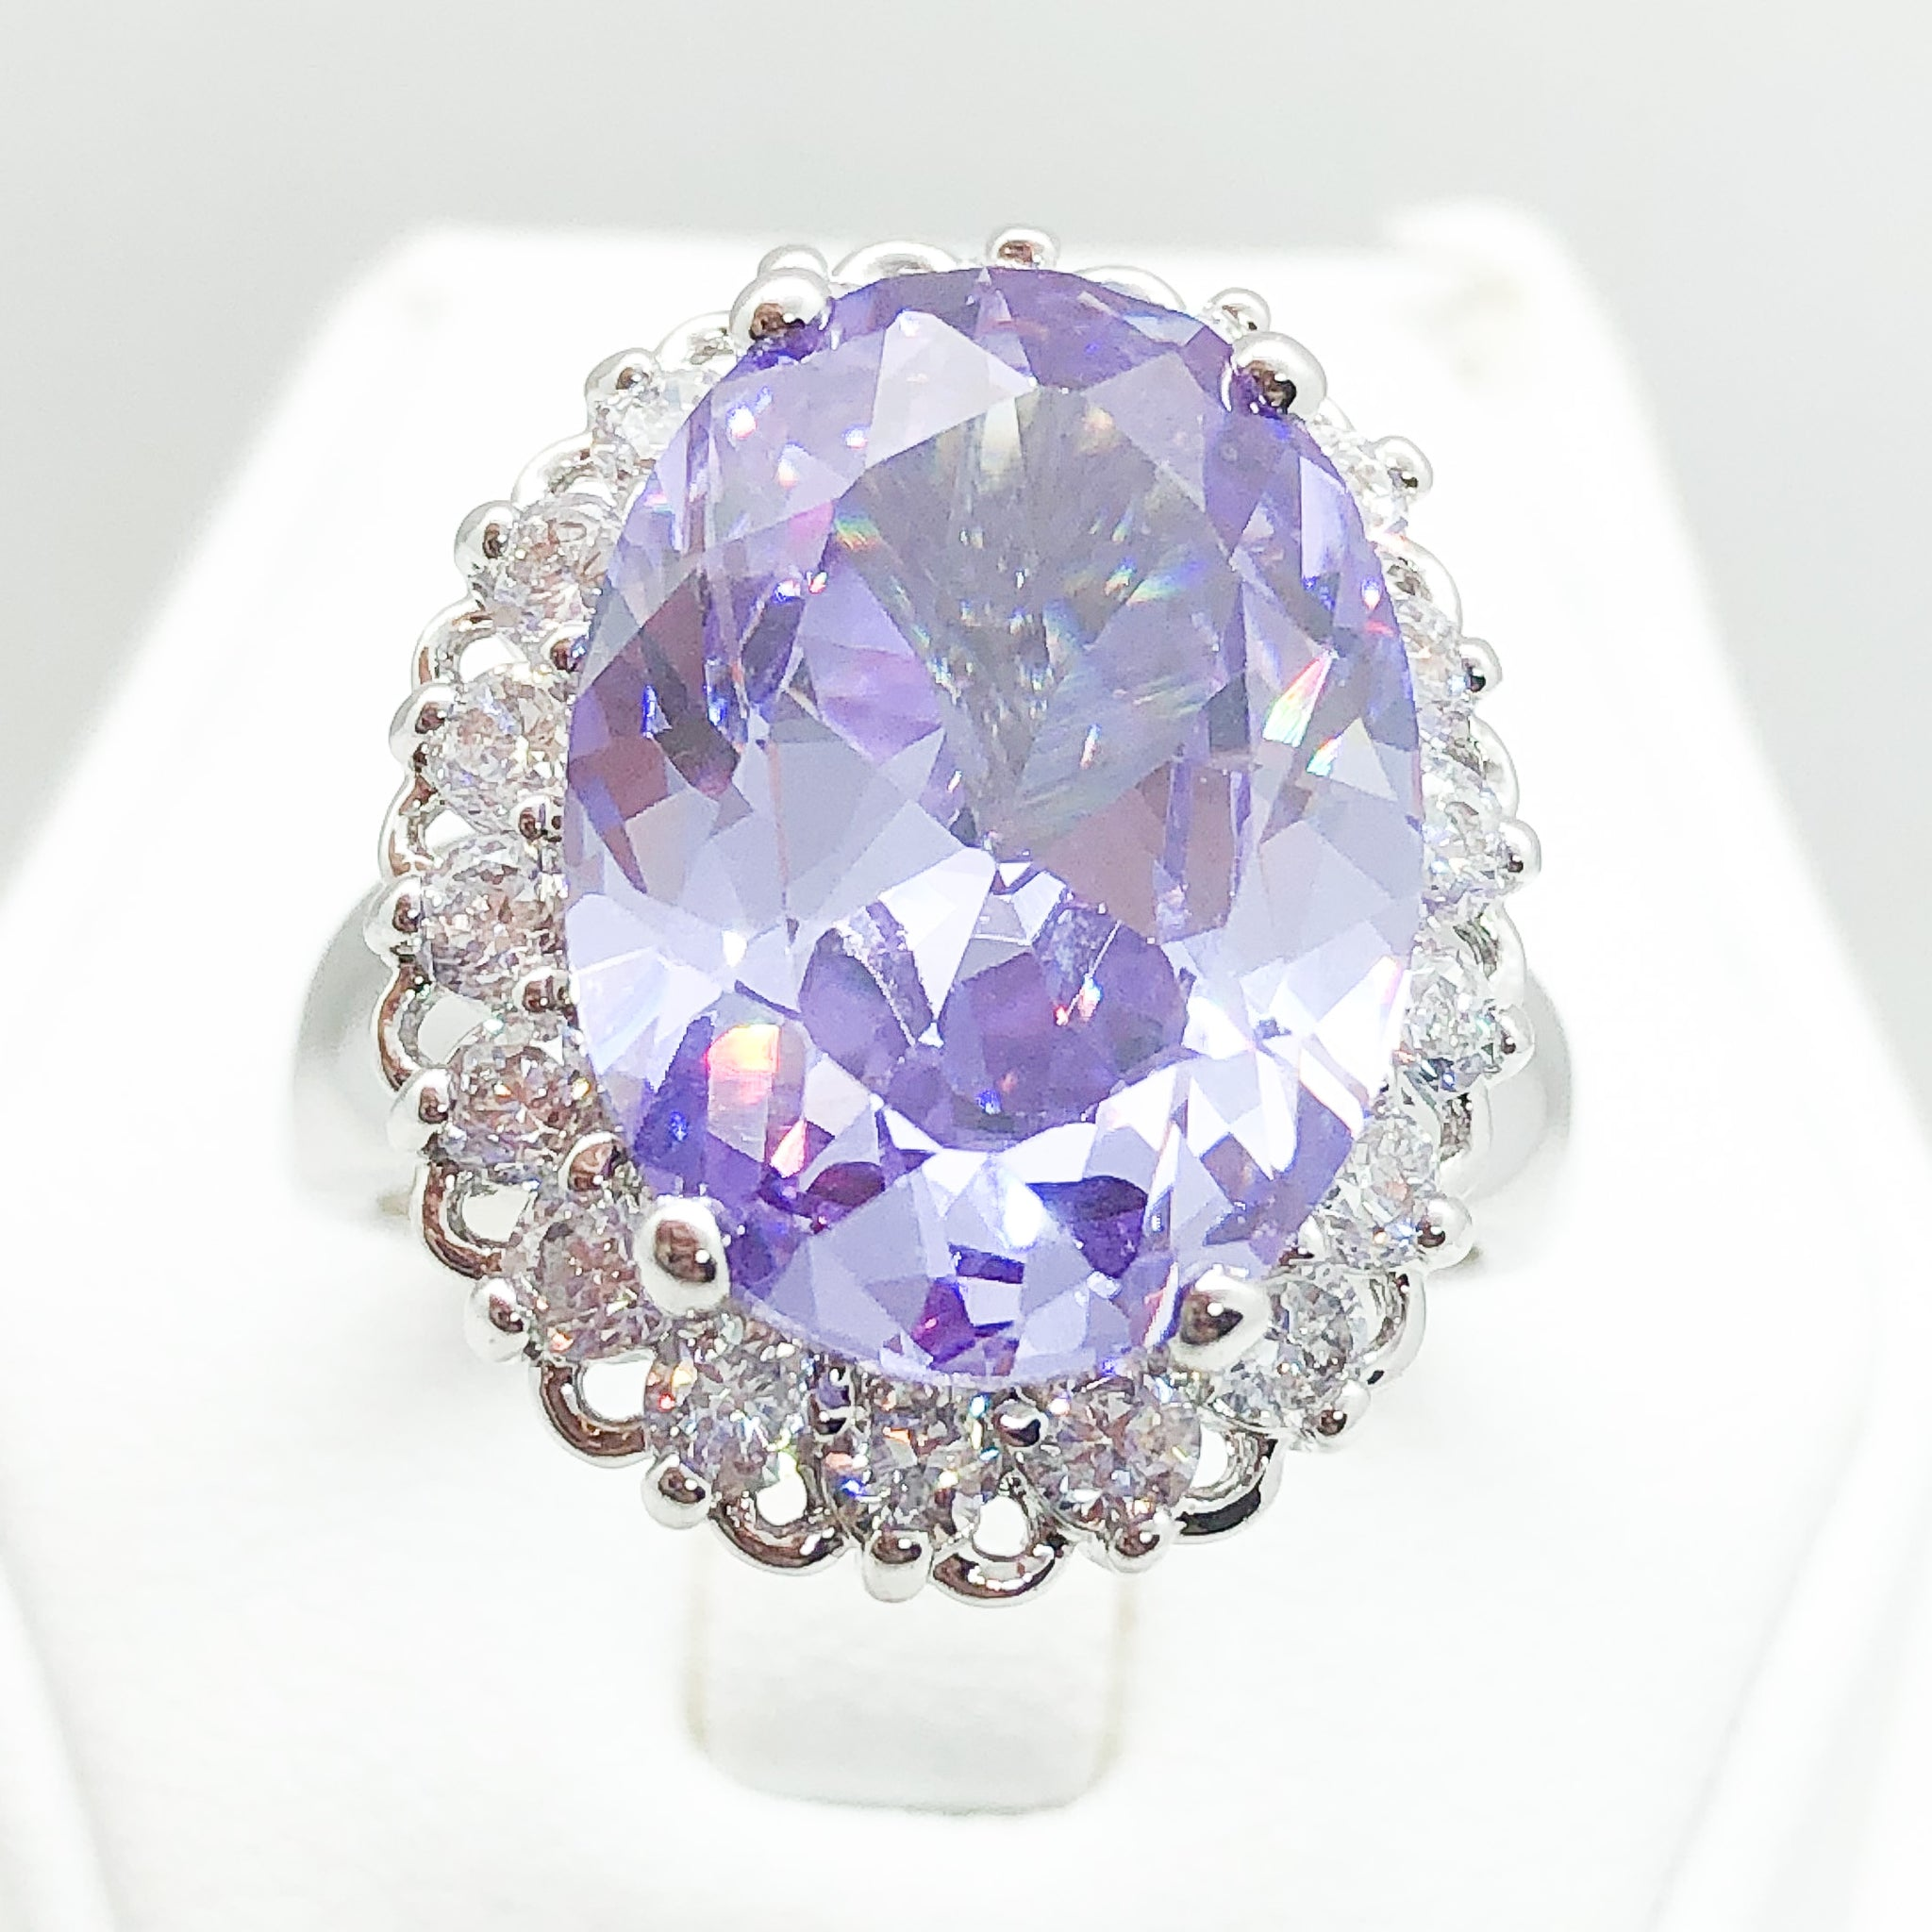 ID:R0350 Women Fashion Jewelry 18K White Gold GF Fabulous Amethyst Crystal Ring With Diamonique Accent Anniversary Gift